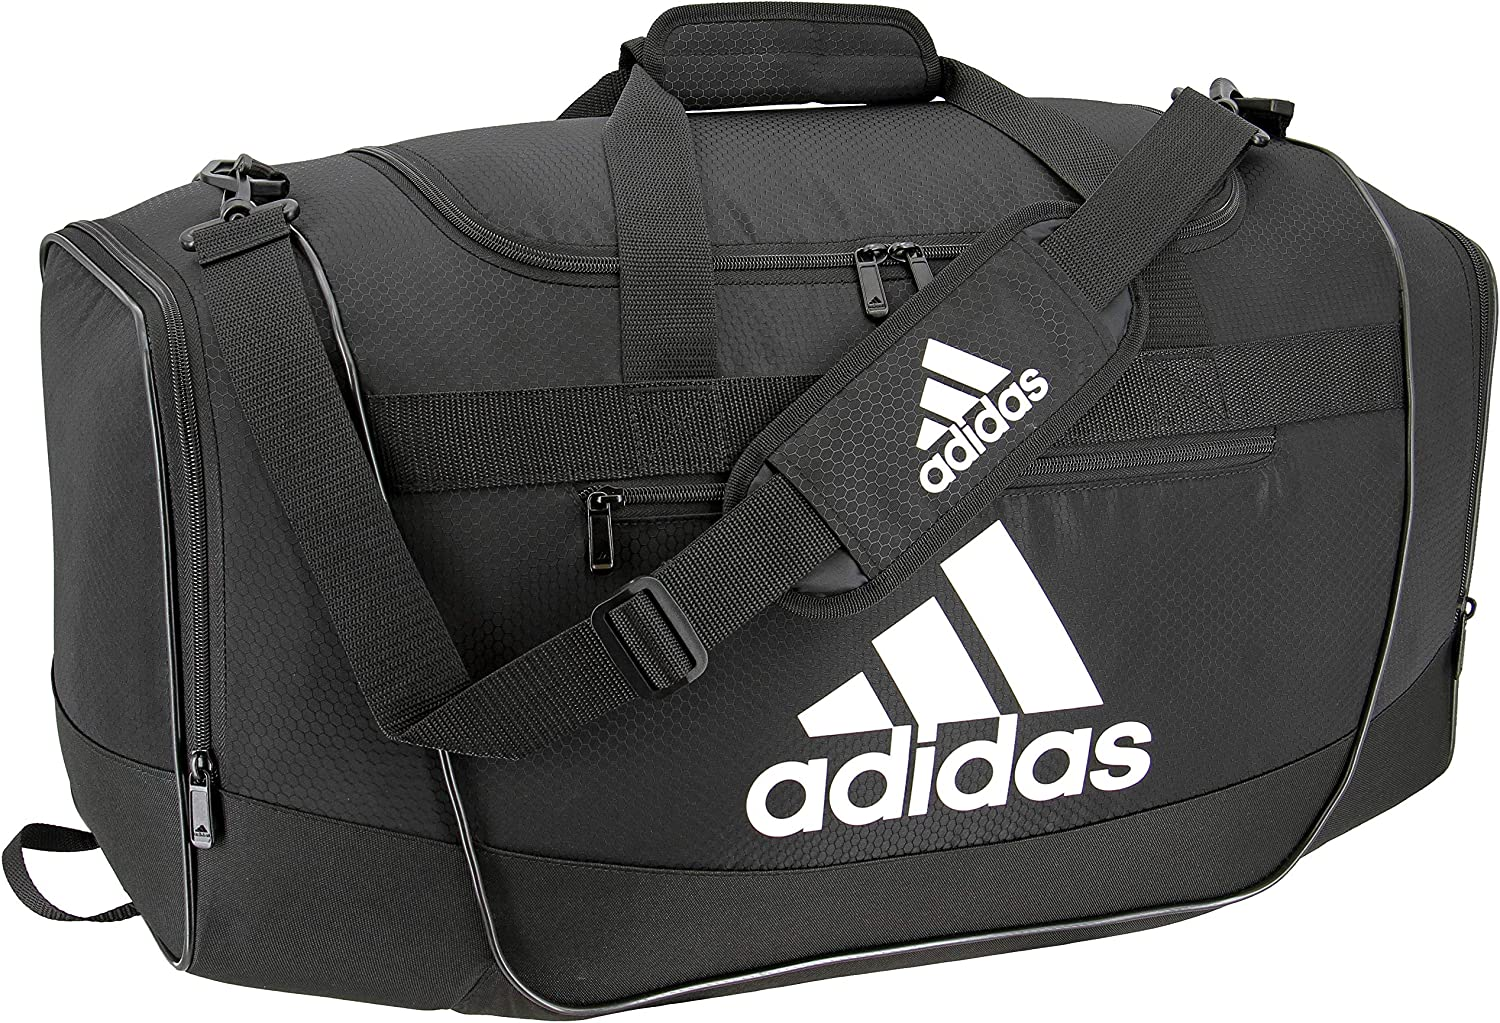 adidas Defender III Duffel Bag, Black/White, Large : Clothing